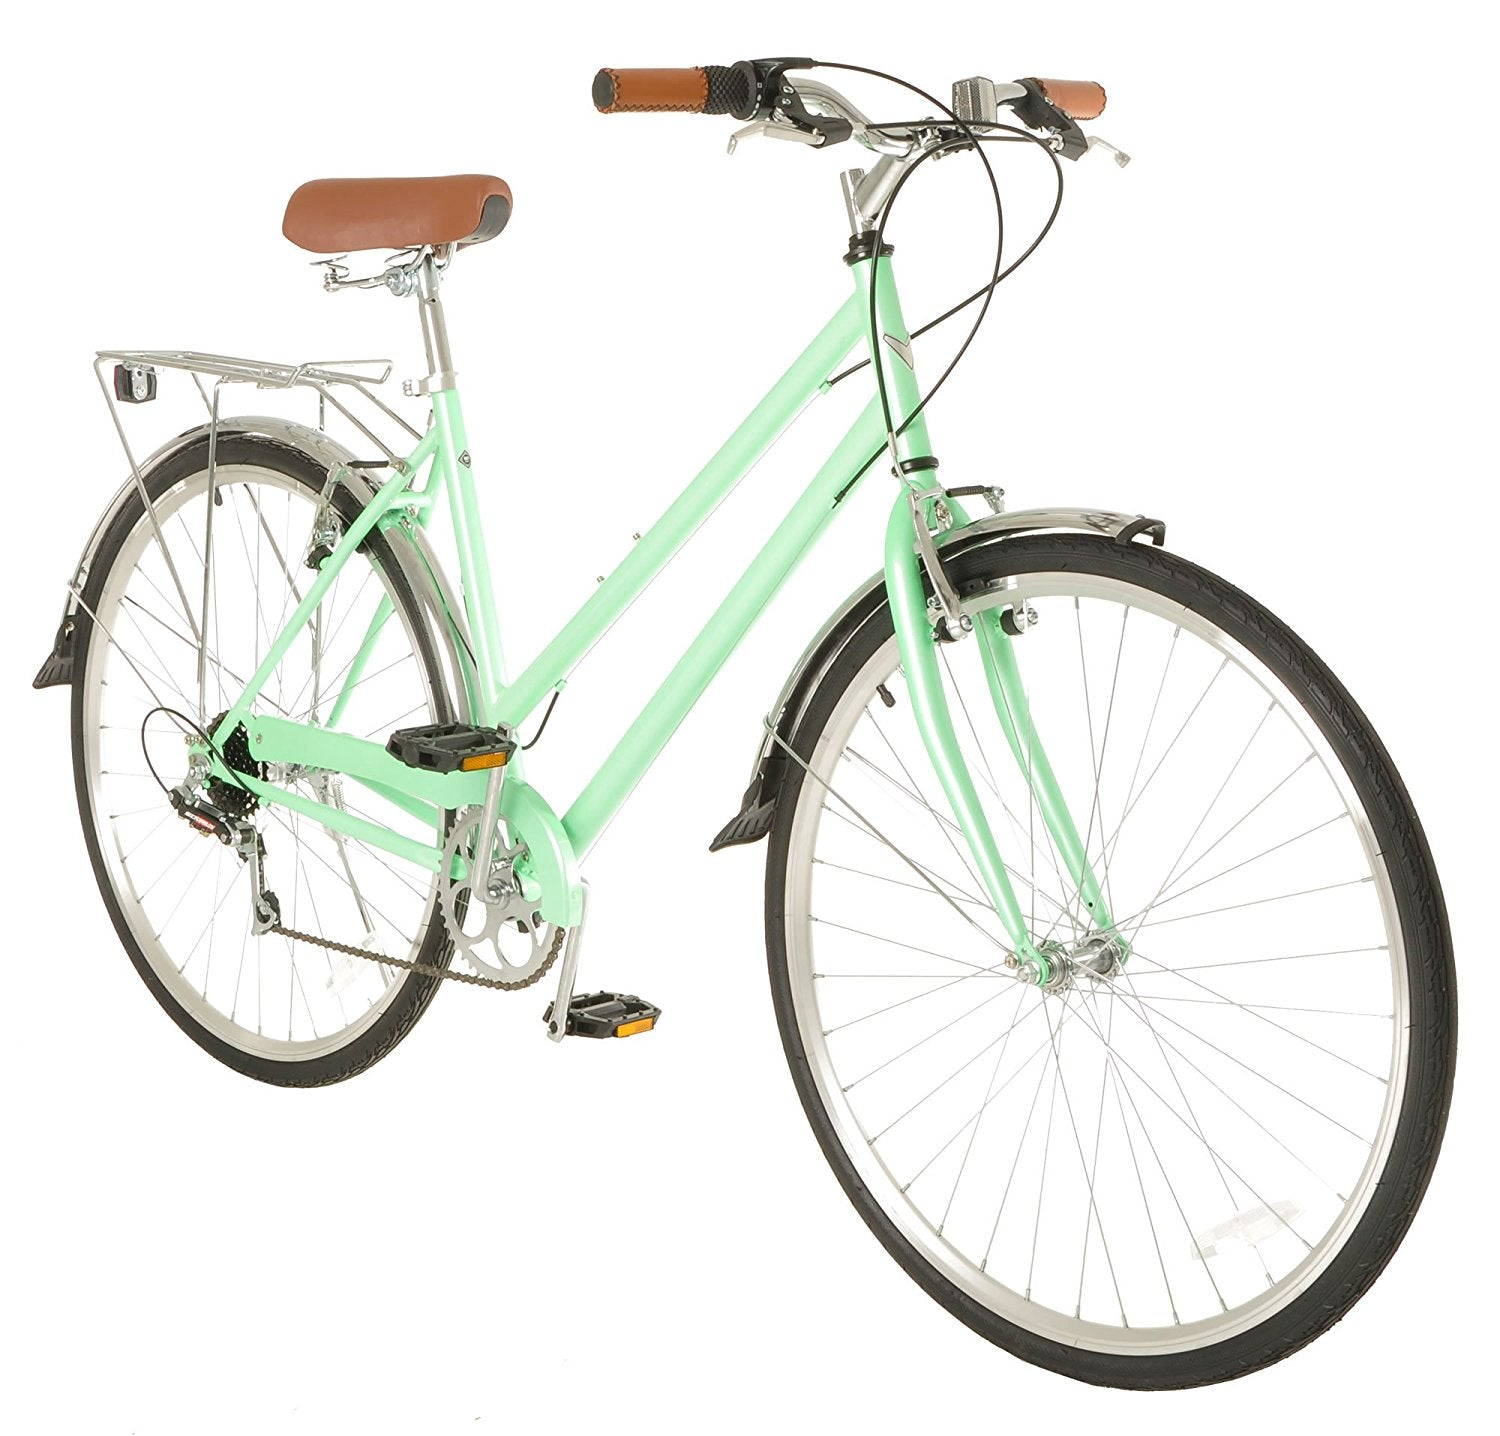 Best Commuter Bike Buying Guide Other Tips To Enjoy Commuting Road Diagram Furthermore Parts This Is A Wonderful Choice For Women Who Want Style Modern Features And Design With Safety In Mind